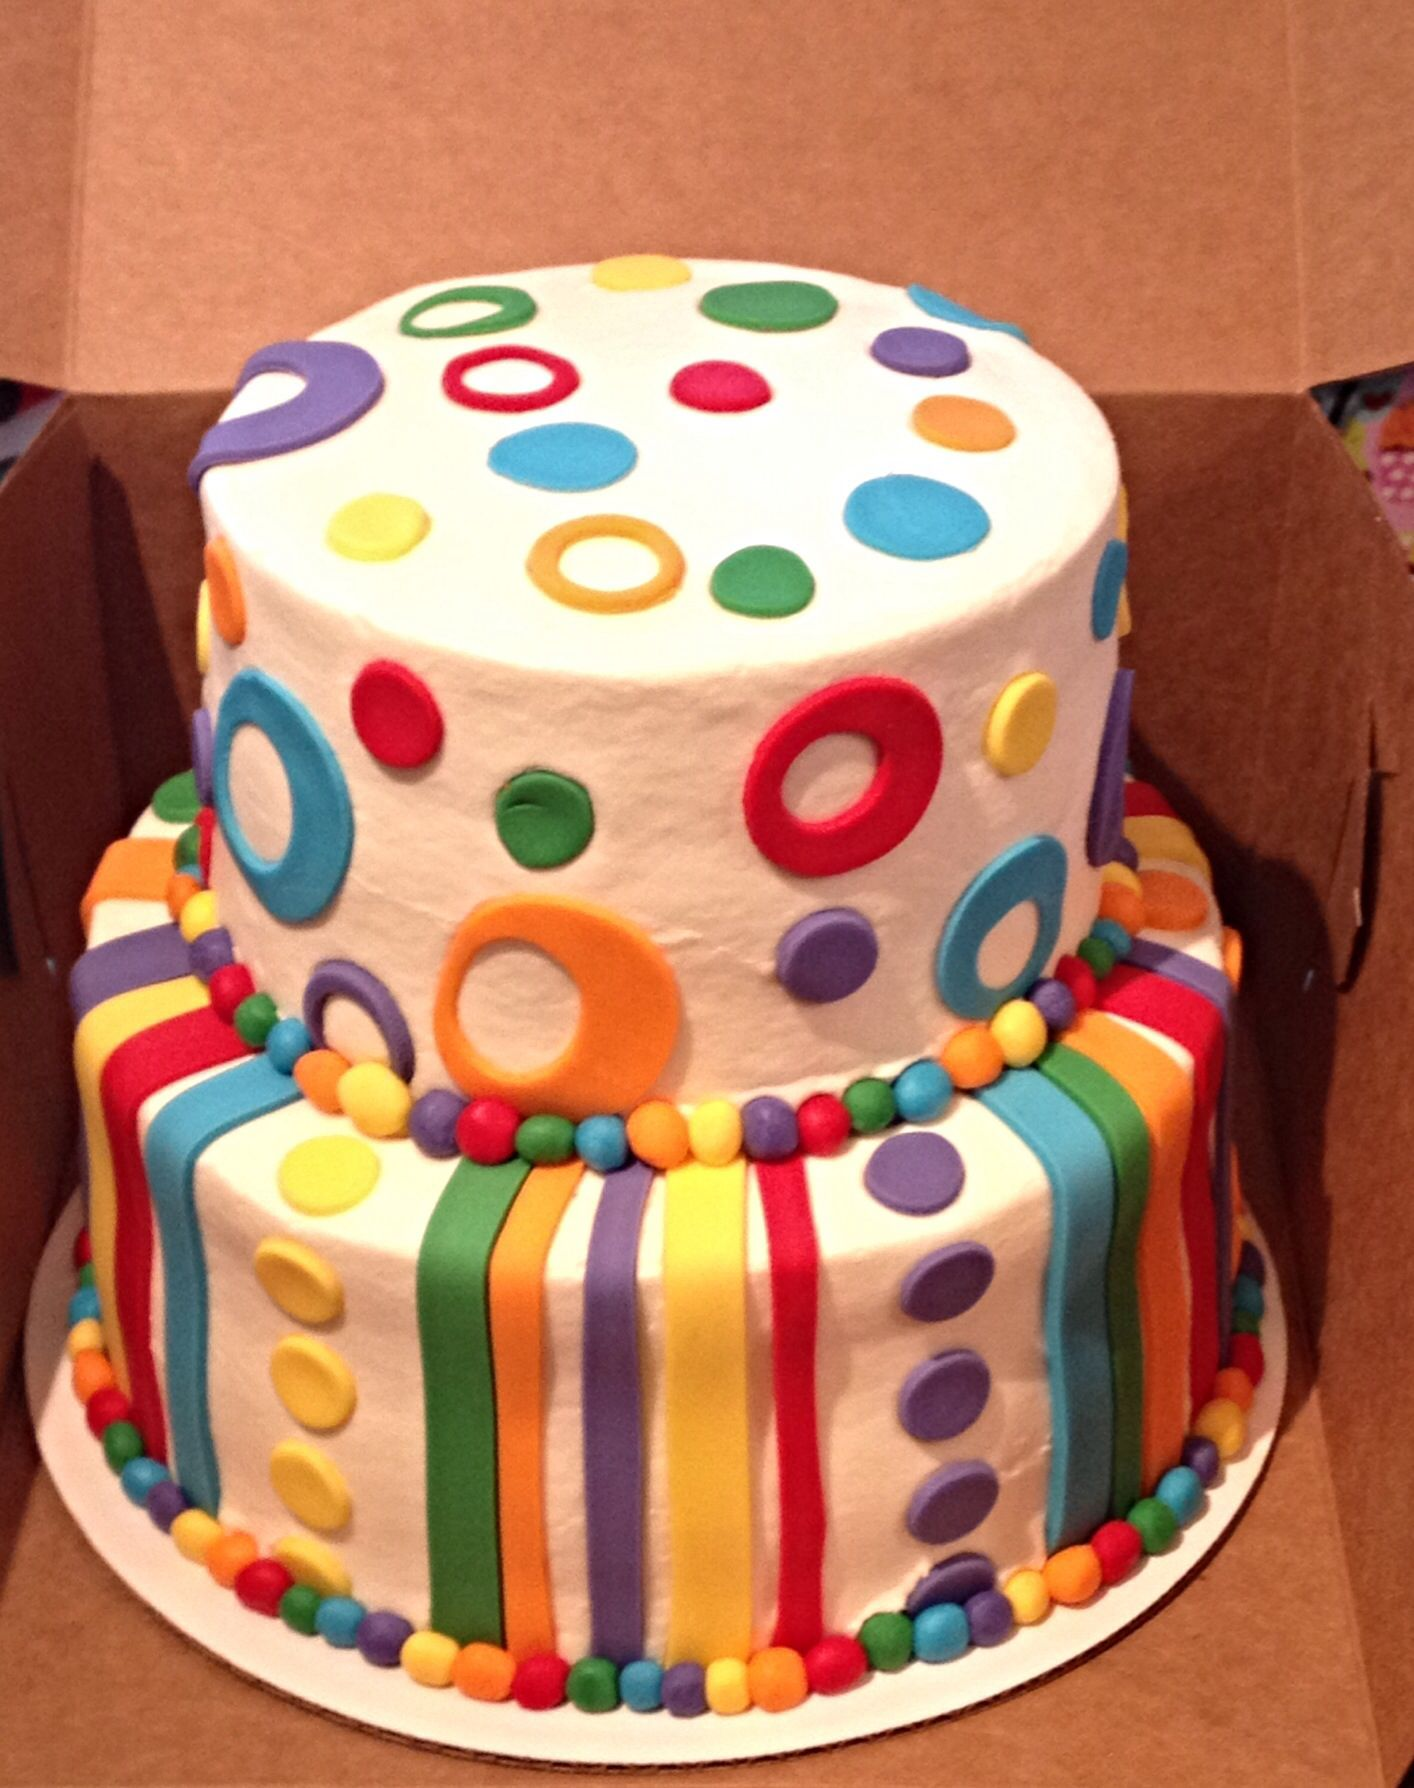 Polka Dot And Stripe Birthday Cake With Images Cake Birthday